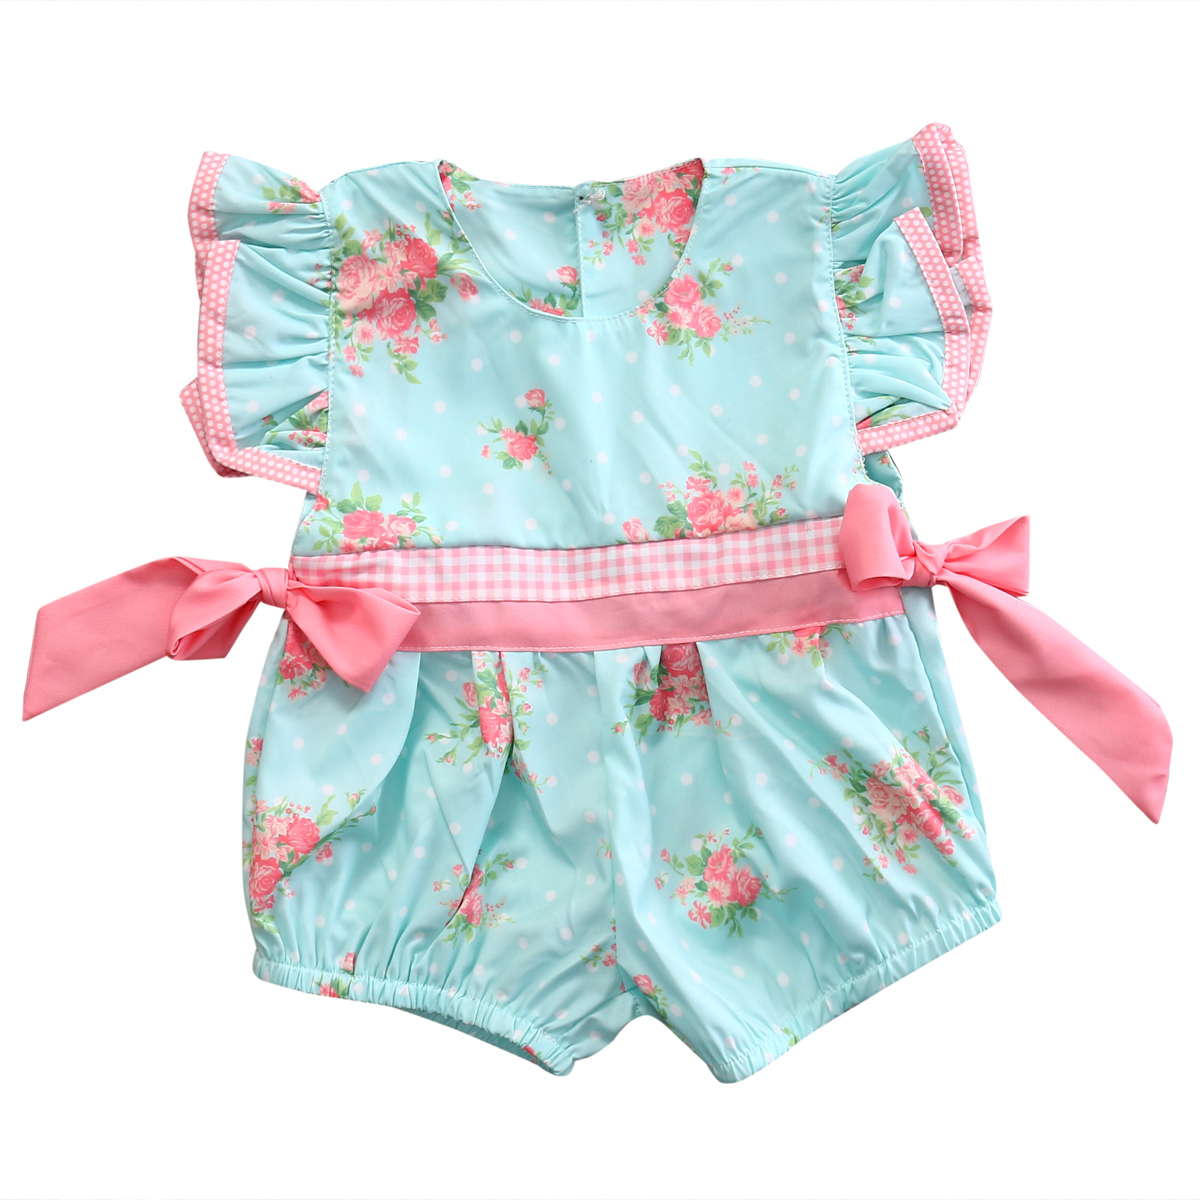 Cute Baby Girls Clothes 2017 Summer Floral Newborn Infant Baby Romper Ruffles Sleeve Toddler Kids Jumpsuit Outfits Sunsuit newborn cute toddler floral baby girl rompers infant cotton long sleeve kids jumpsuit overall romper hat children clothes sets